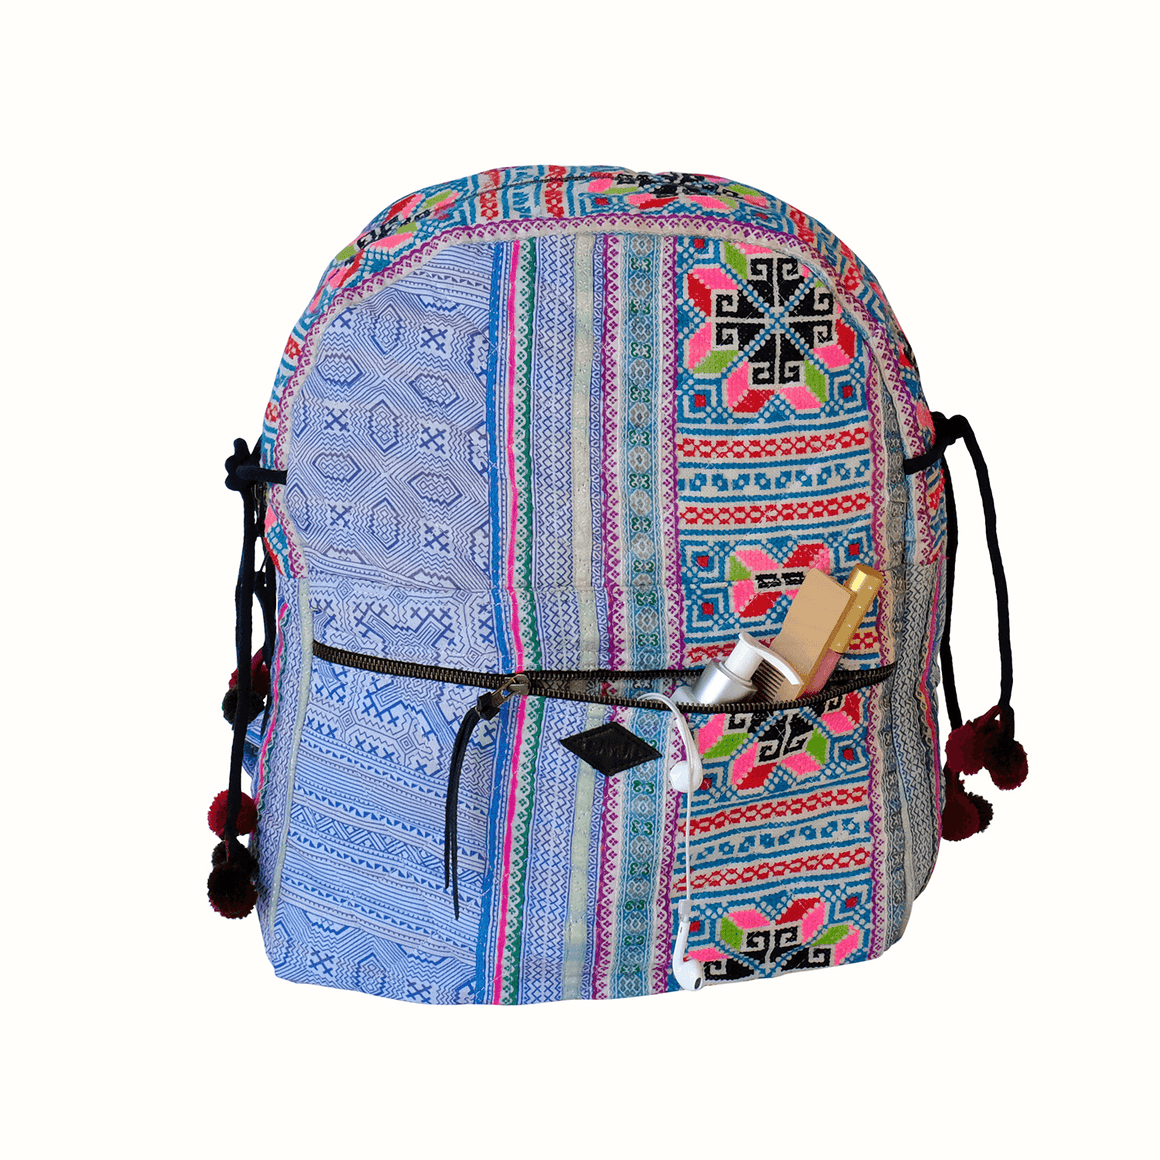 Samui Bags Paradise Backpack Handmade Thai Bag